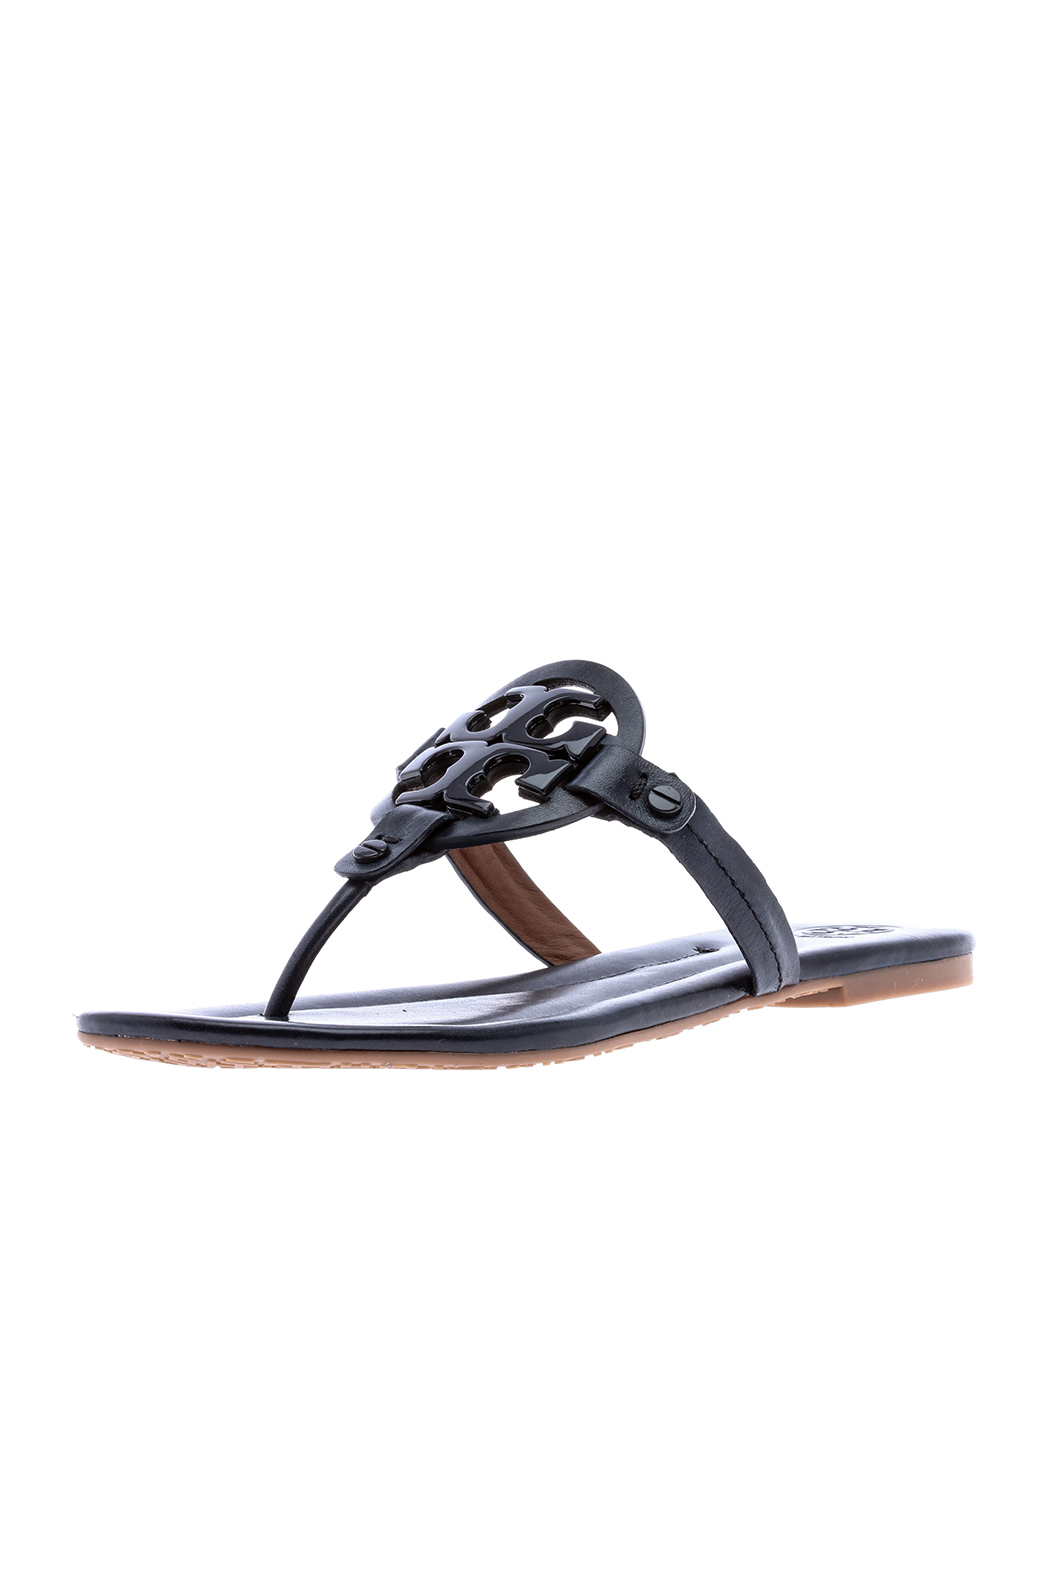 0cc605ee6e1b1 Tory Burch Miller 2 Sandal from New Hampshire by Stiletto Shoes ...